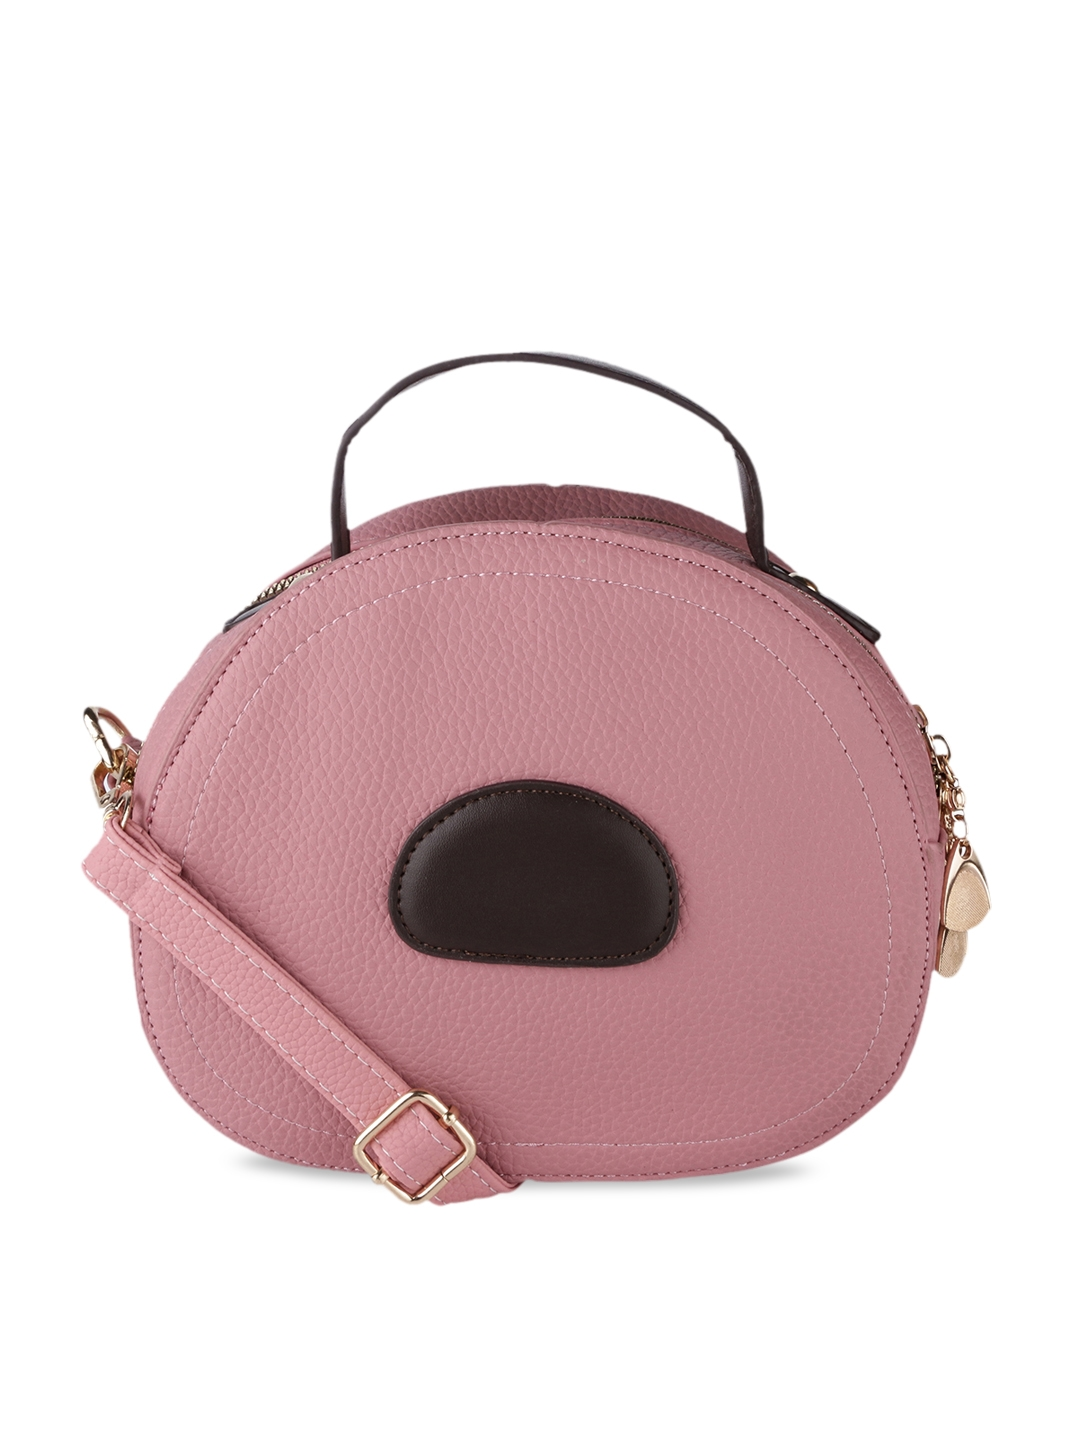 Satchel Bags Women Pink   Brown Colourblocked Satchel